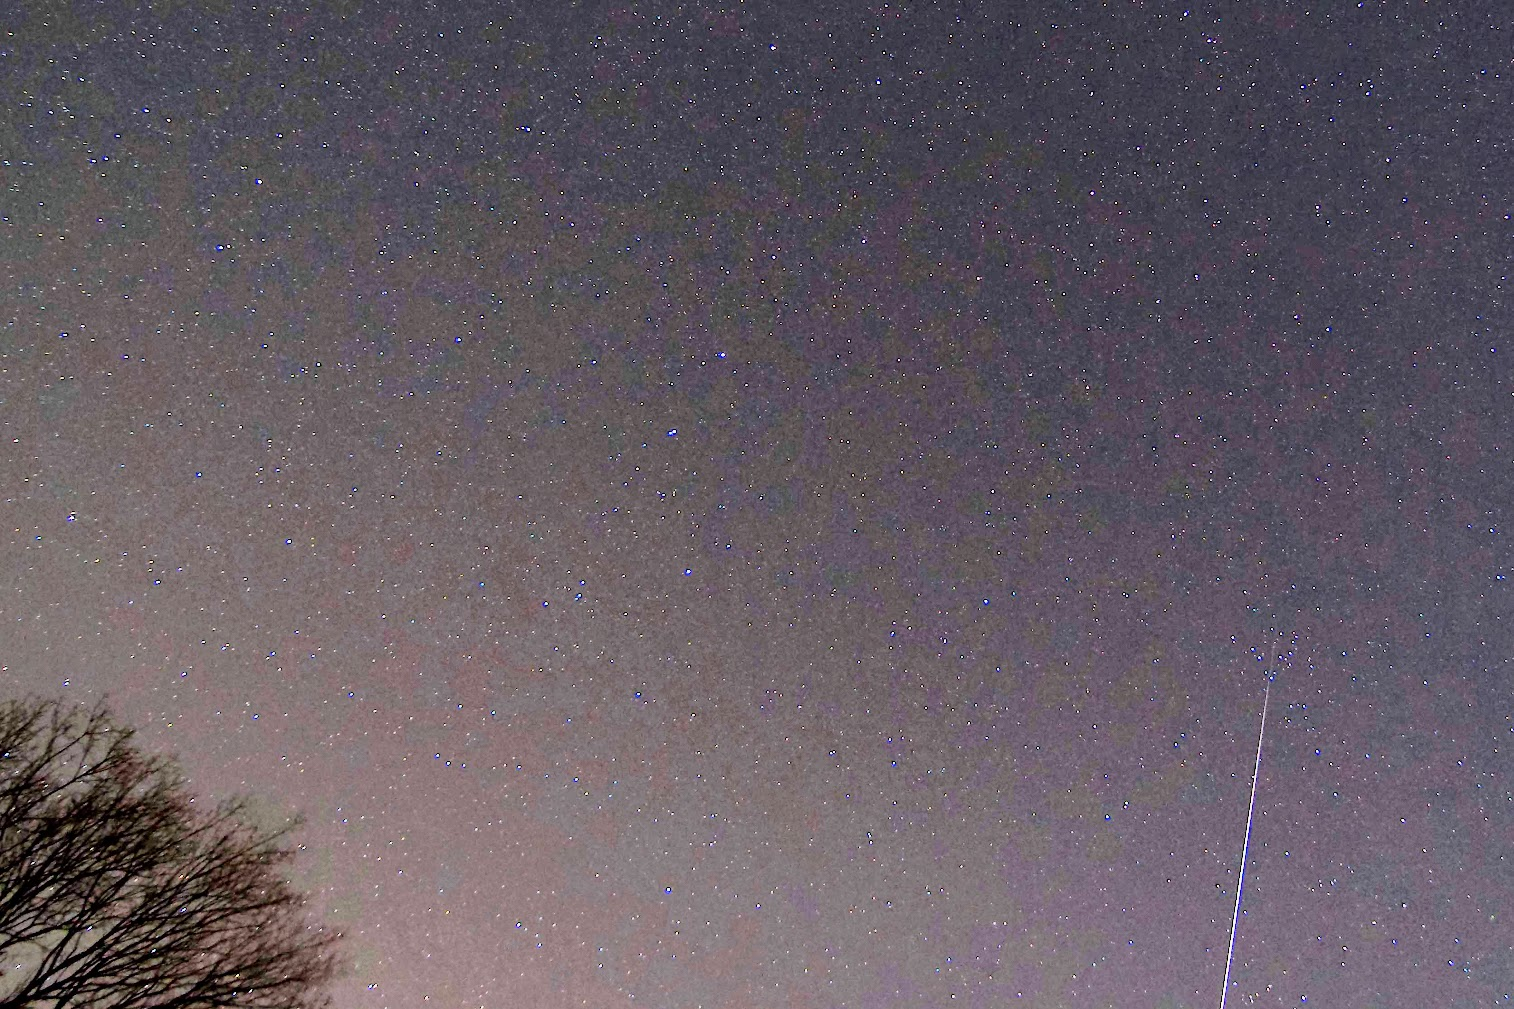 A Bright Geminid Meteor - Cropped Version